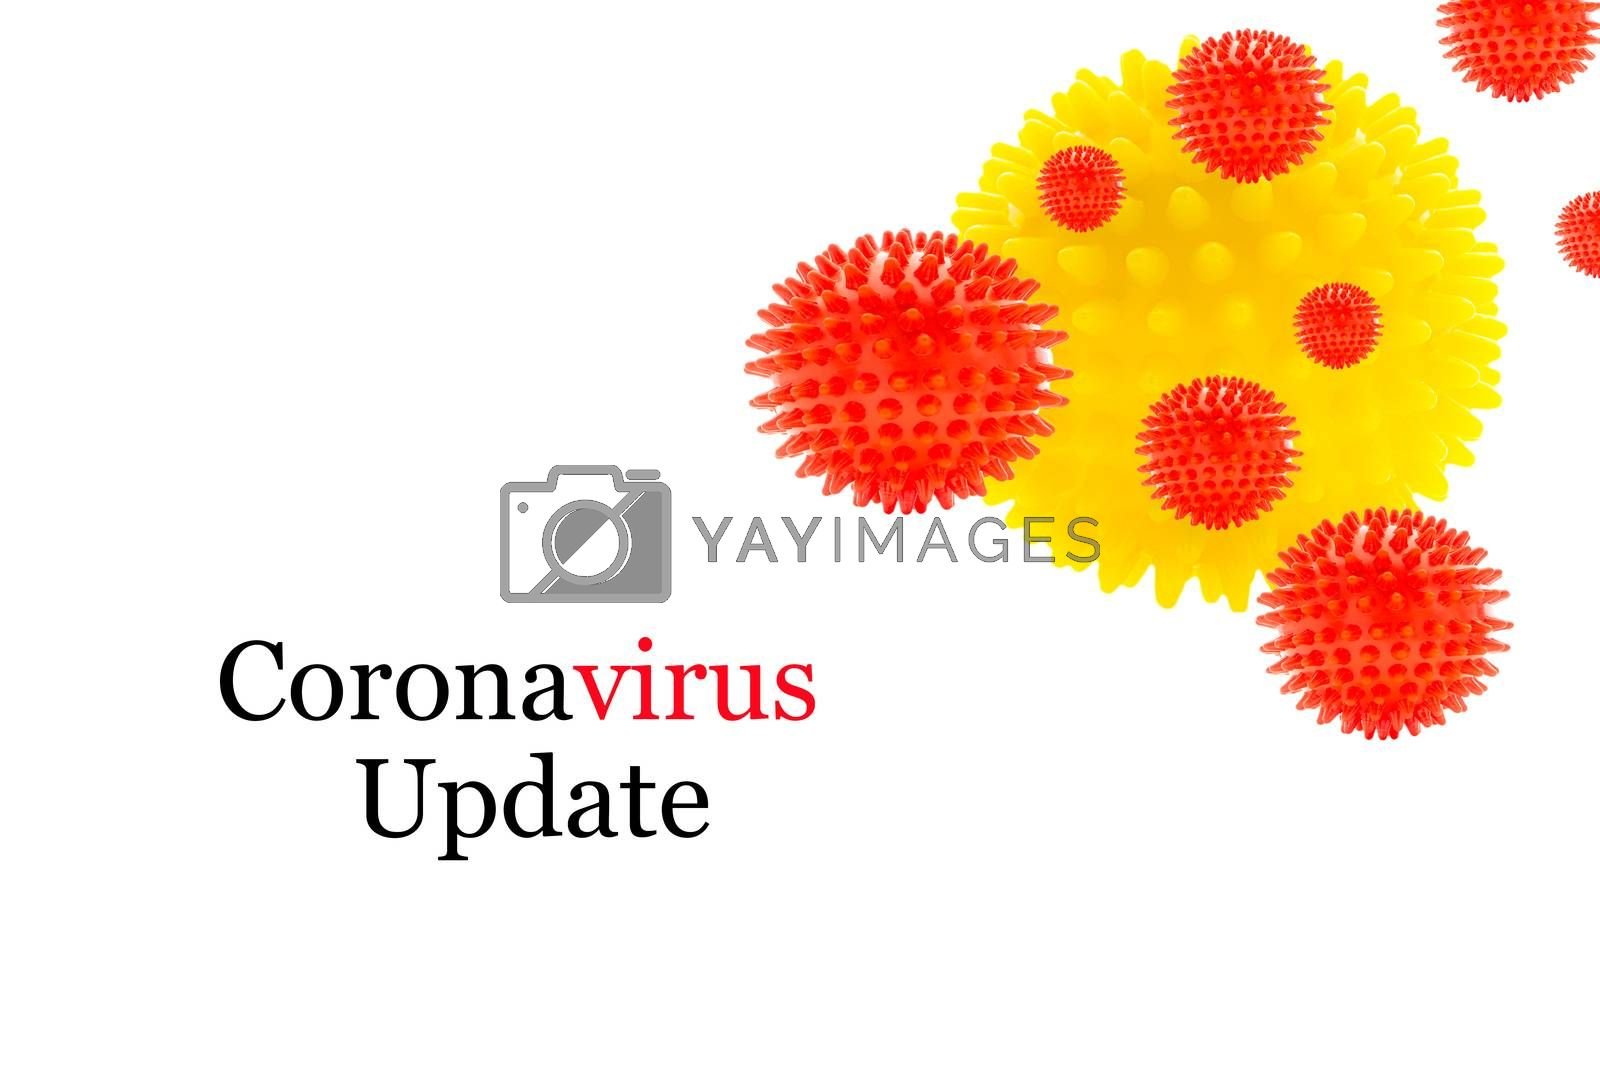 CORONAVIRUS UPDATE text on white background. Covid-19 or Coronavirus